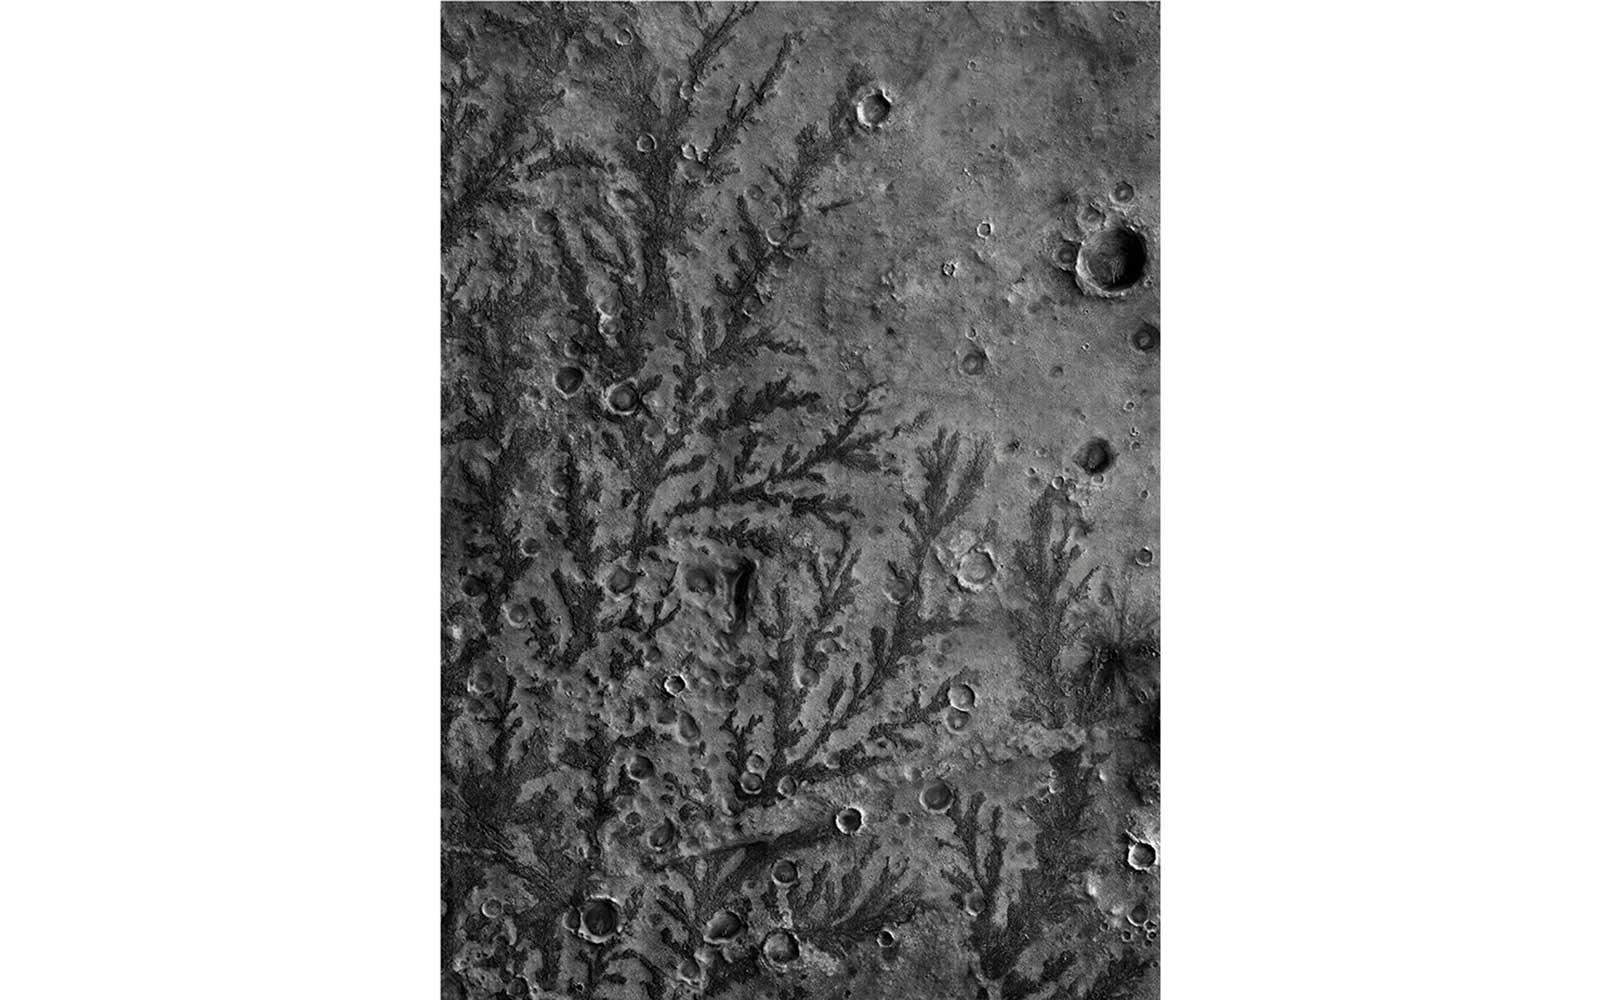 Branch-like Forms on the Floor of the Antoniadi Crater, LAT: 21.4° LONG: 61.3°; from This Is Mars (Aperture, 2017)